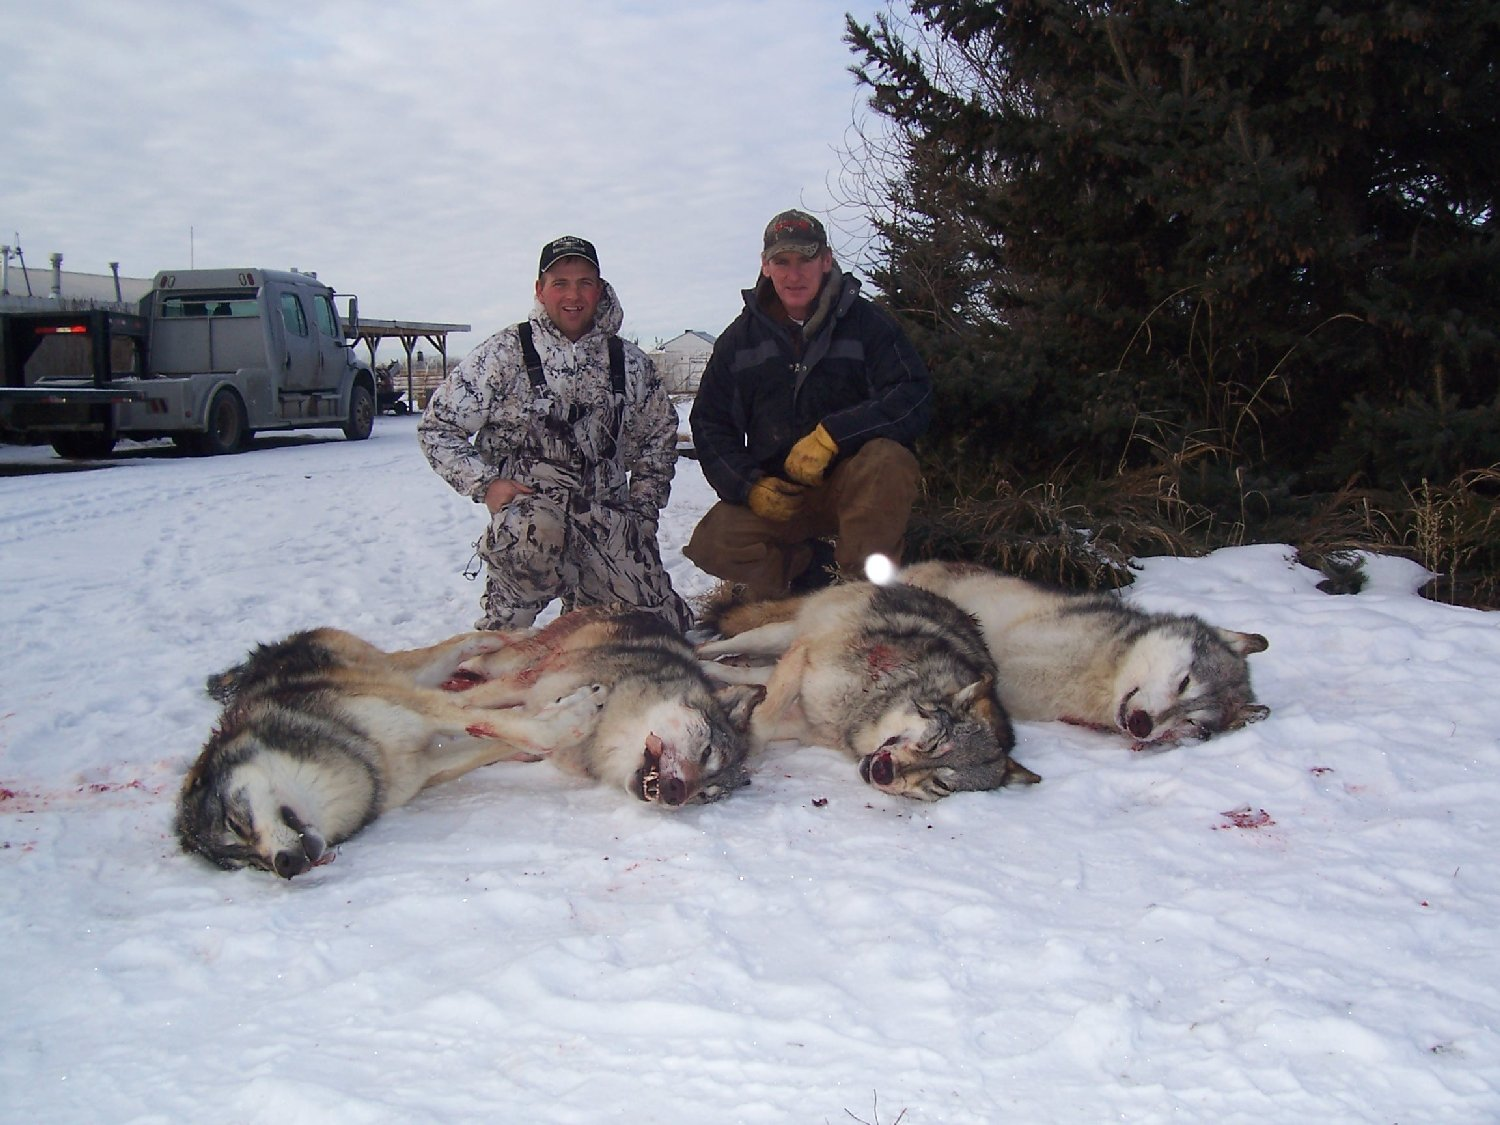 POLL: Should the slaughter of wolves in British Columbia be banned?